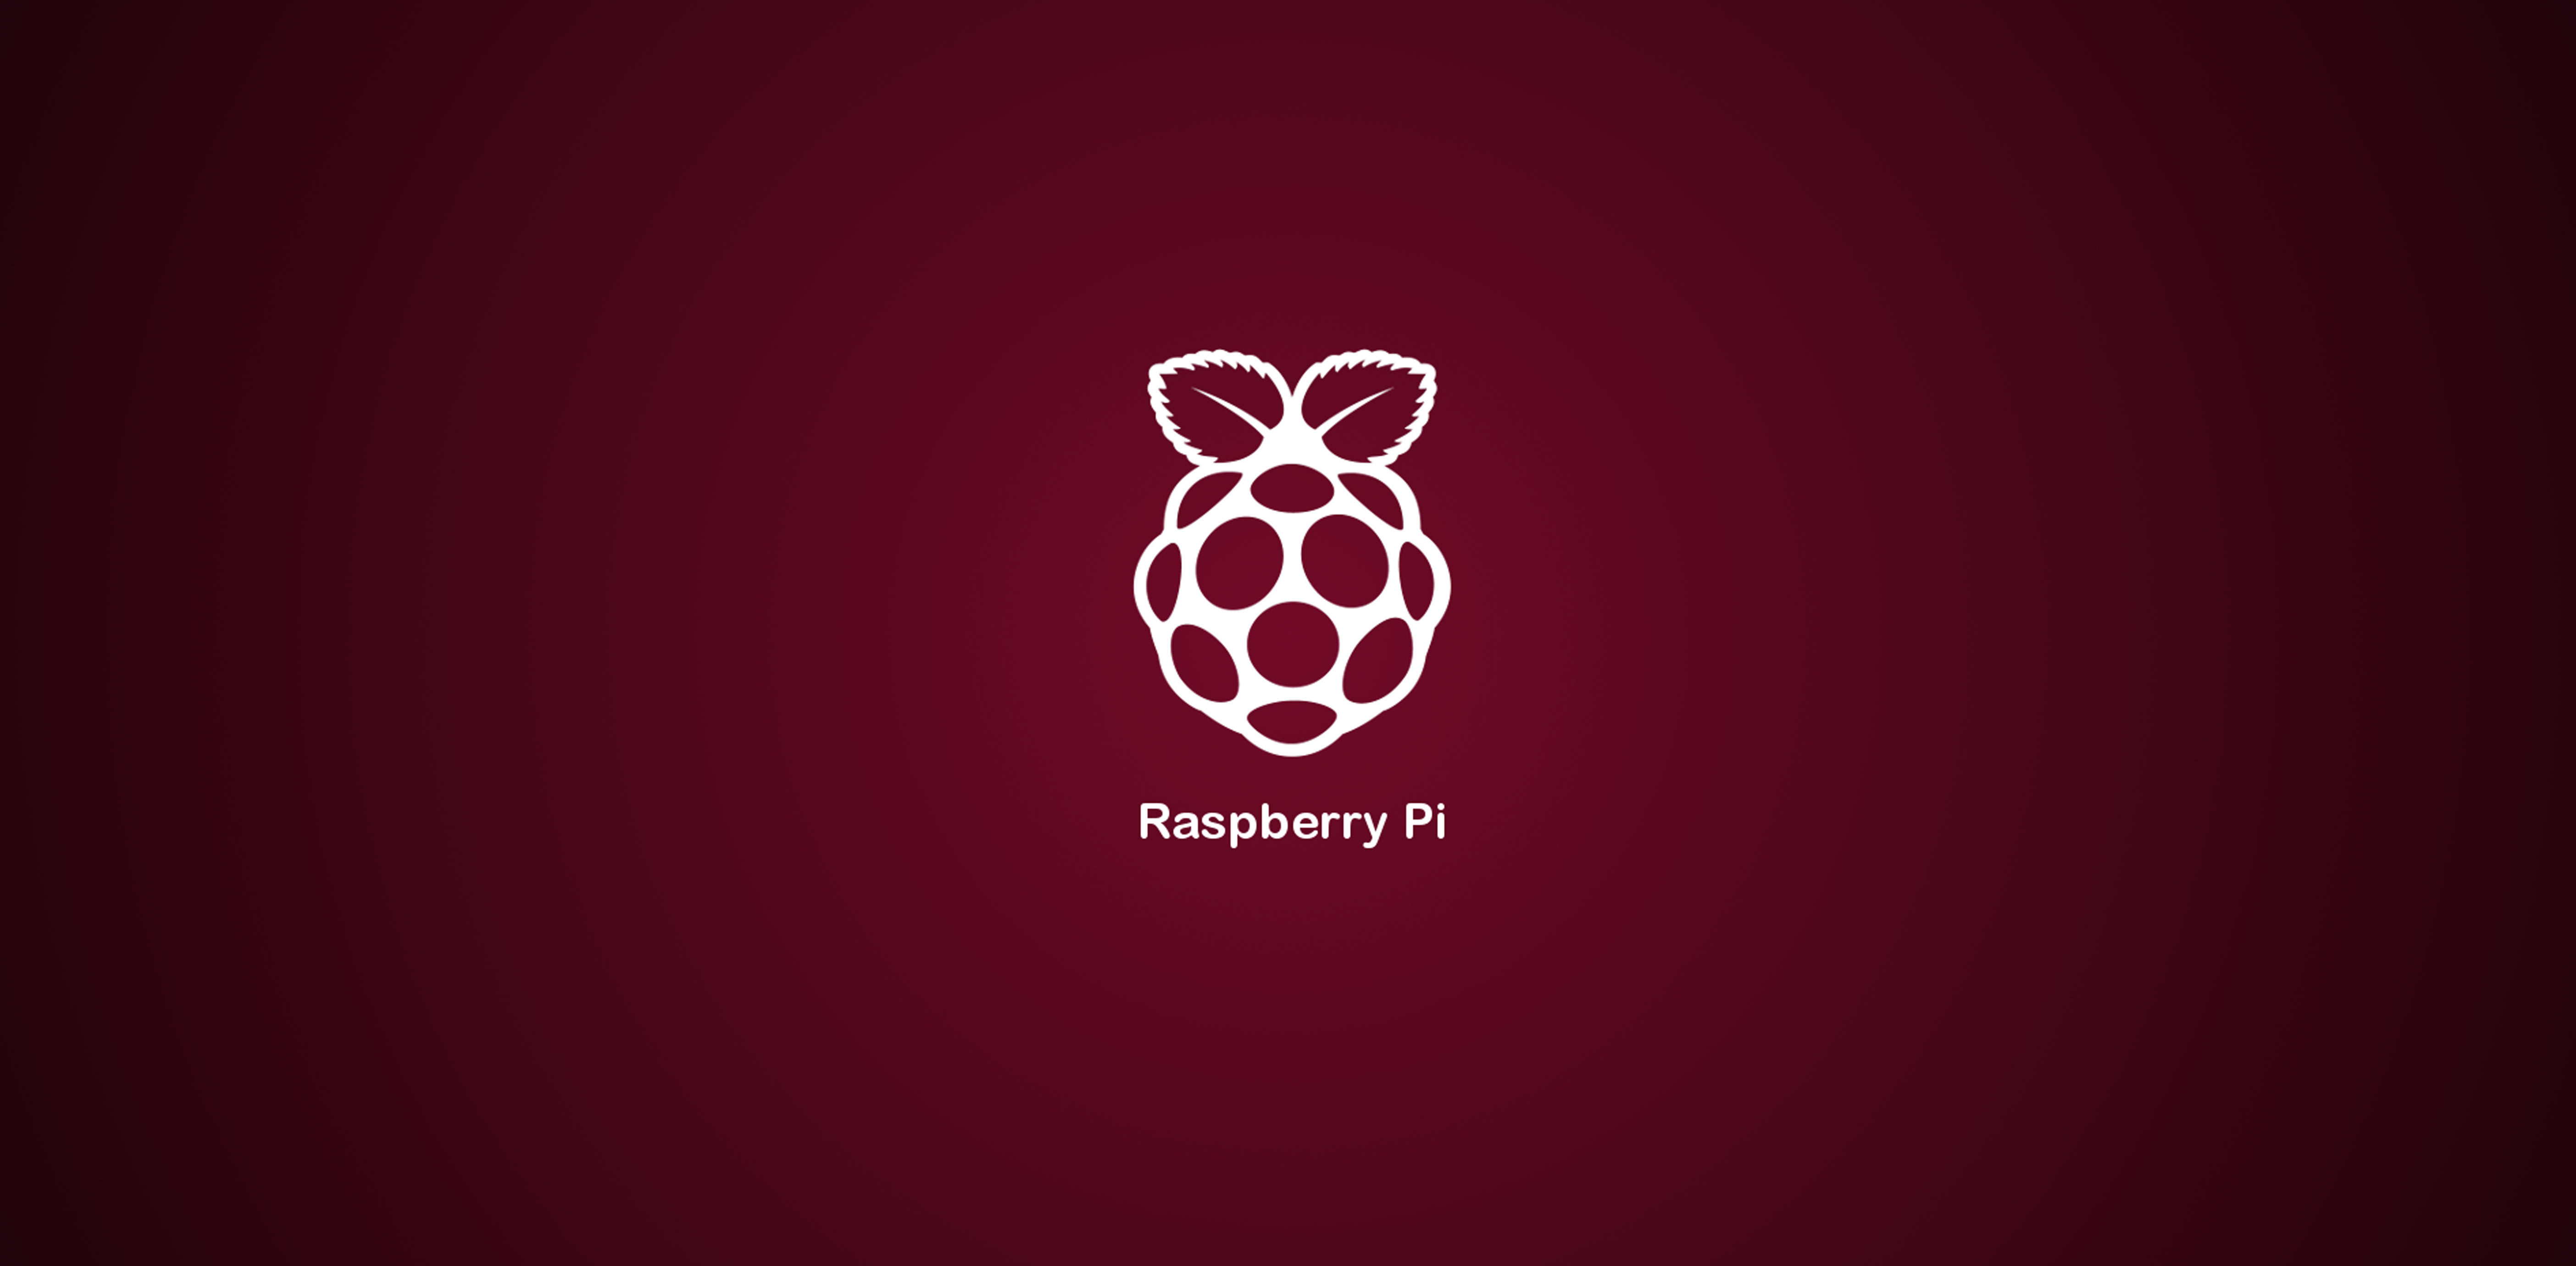 Three Days National Level Workshop on Raspberry Pi